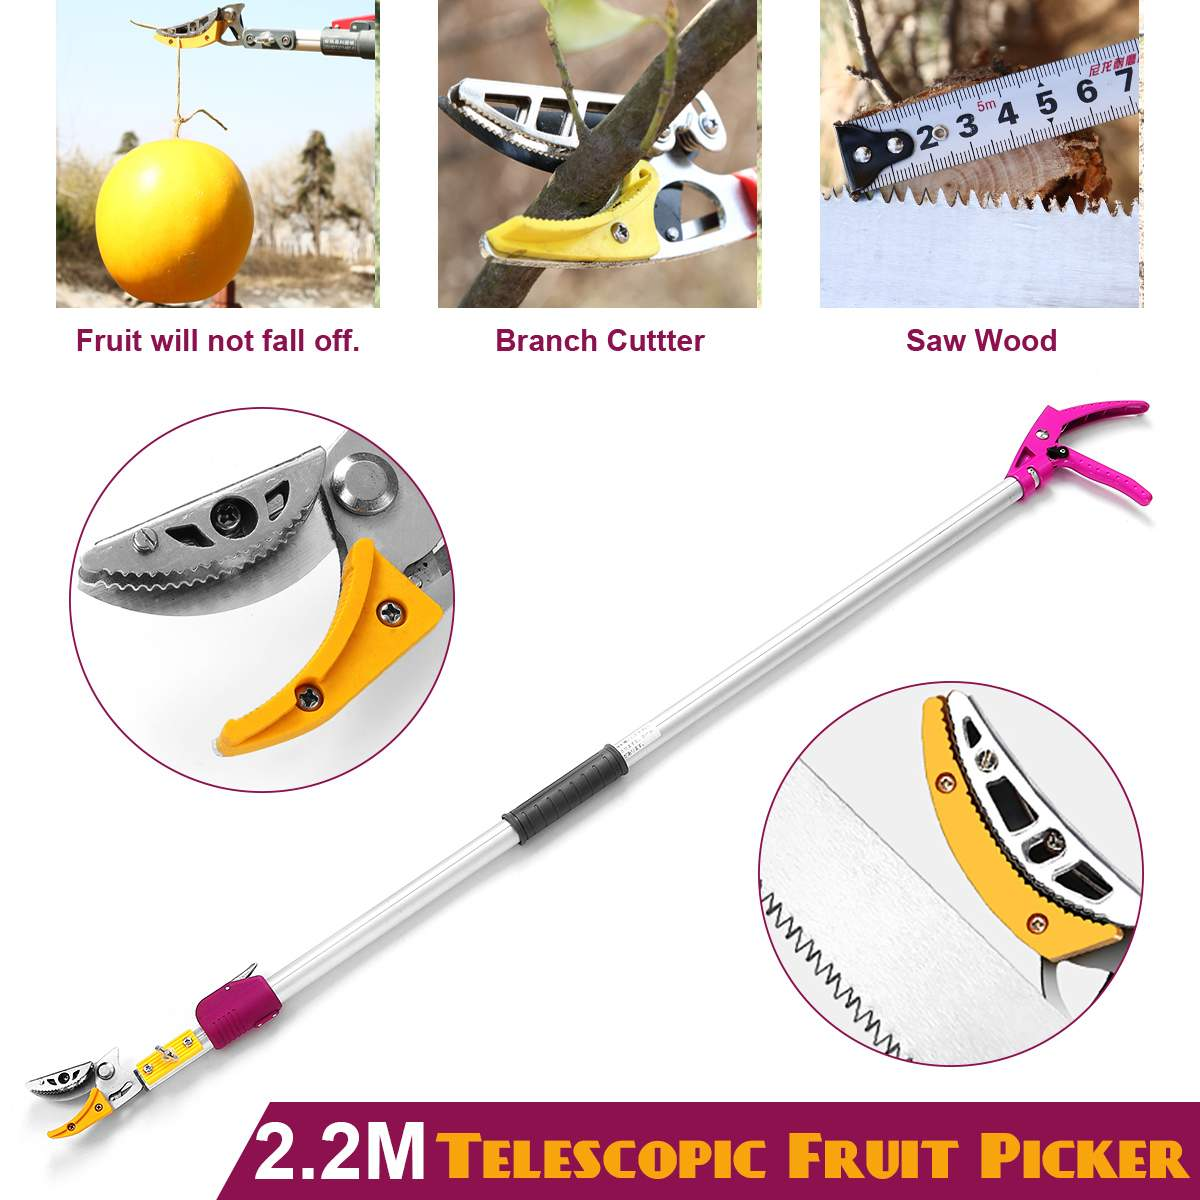 2.2m Extra Long Reach Pruner Cut And Hold Bypass Pruner Max Cutting Fruit Picker And Tree Cutter For Garden